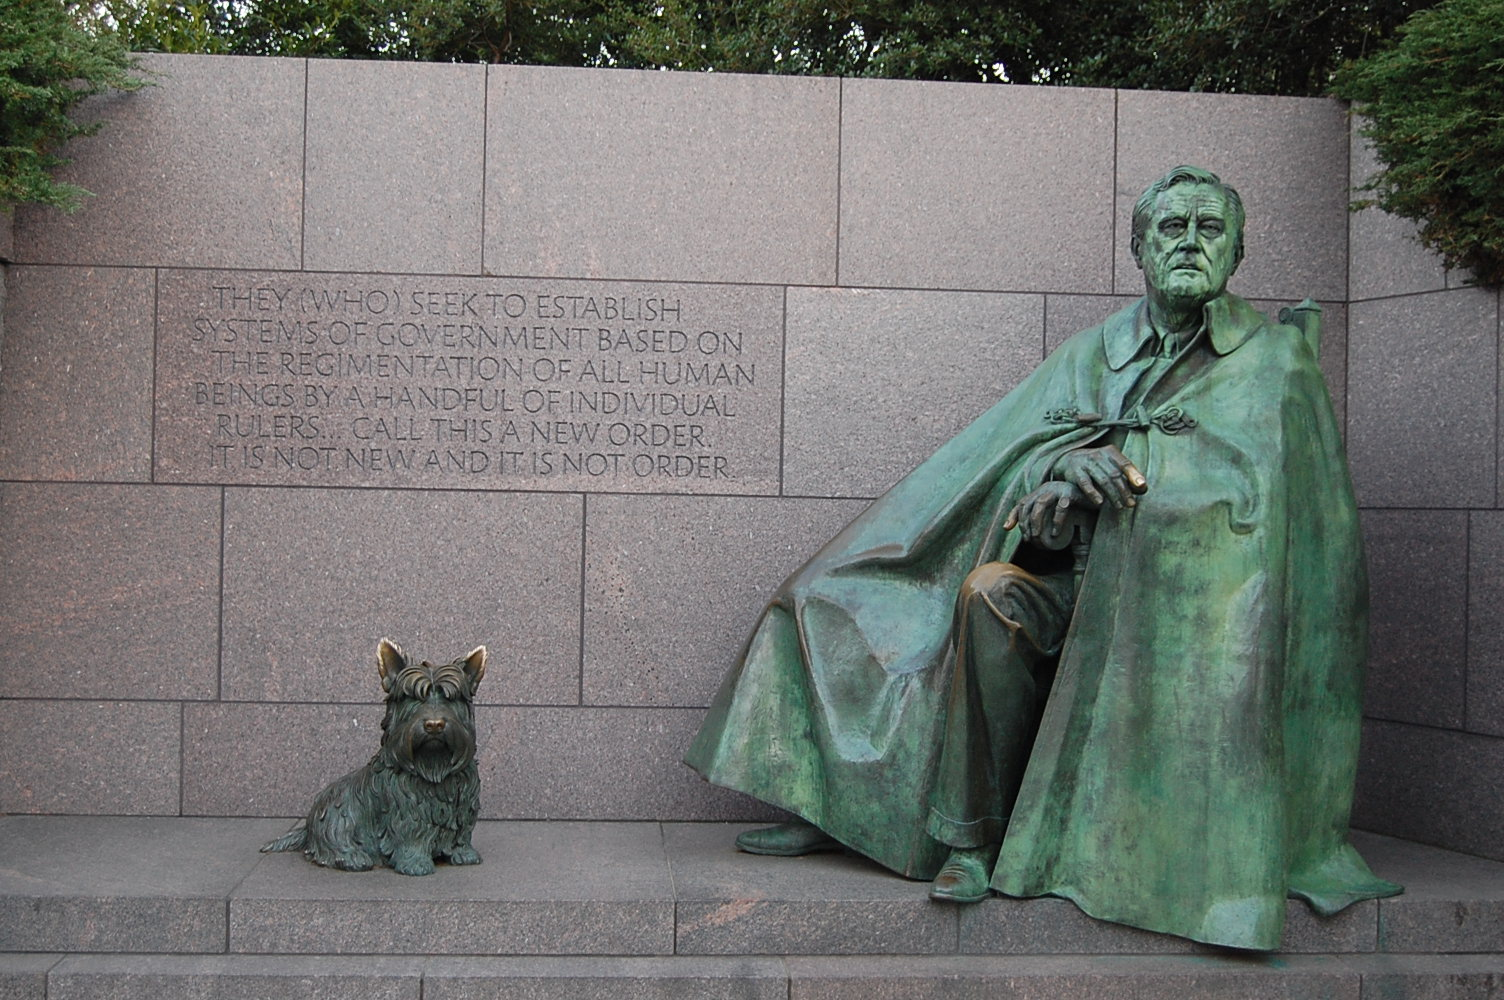 go us history this picture shows a bronze statue of franklin delano roosevelt and his dog fala